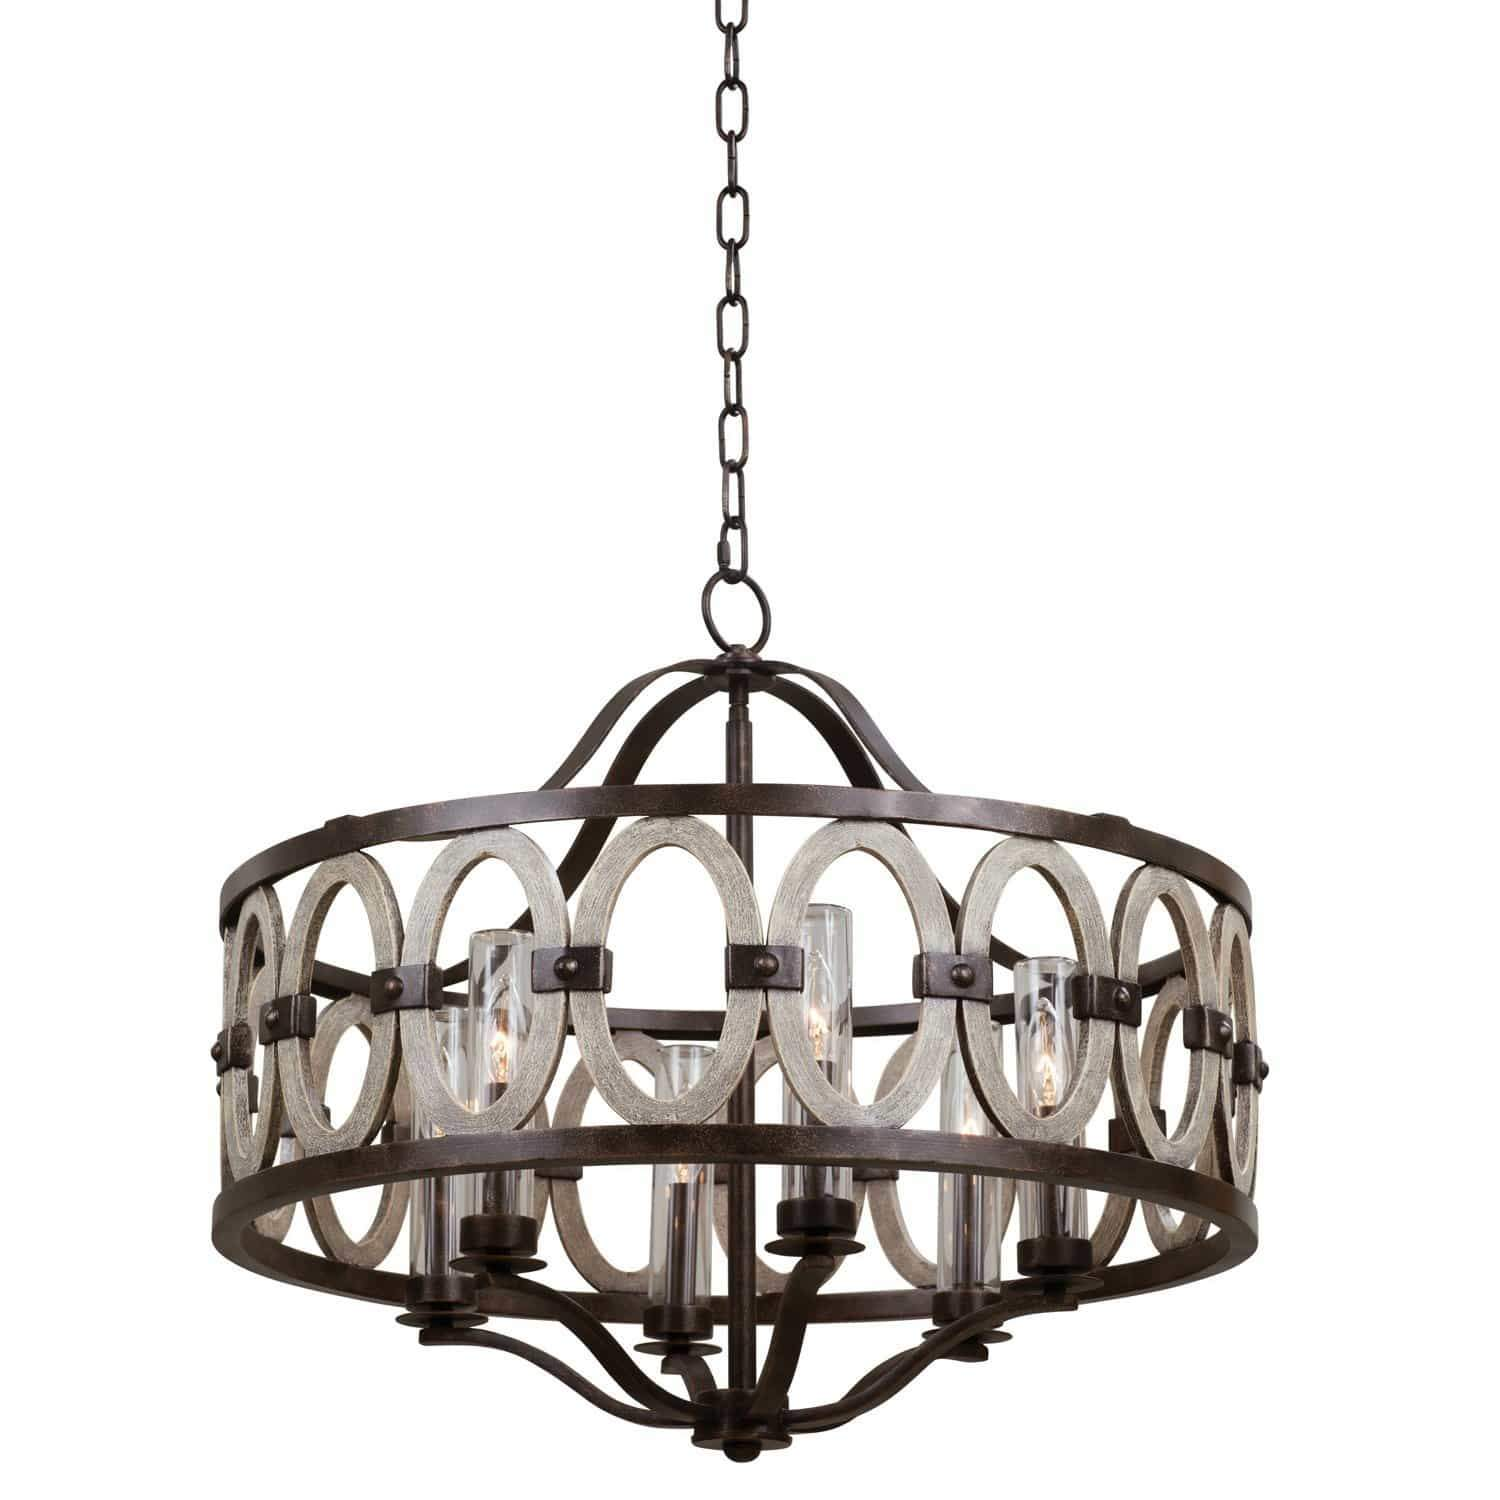 Kalco Lighting Pendants Florence Gold / Threaded Clear Cylinder Belmont 28 Inch Outdoor Pendant By Kalco Lighting 404452